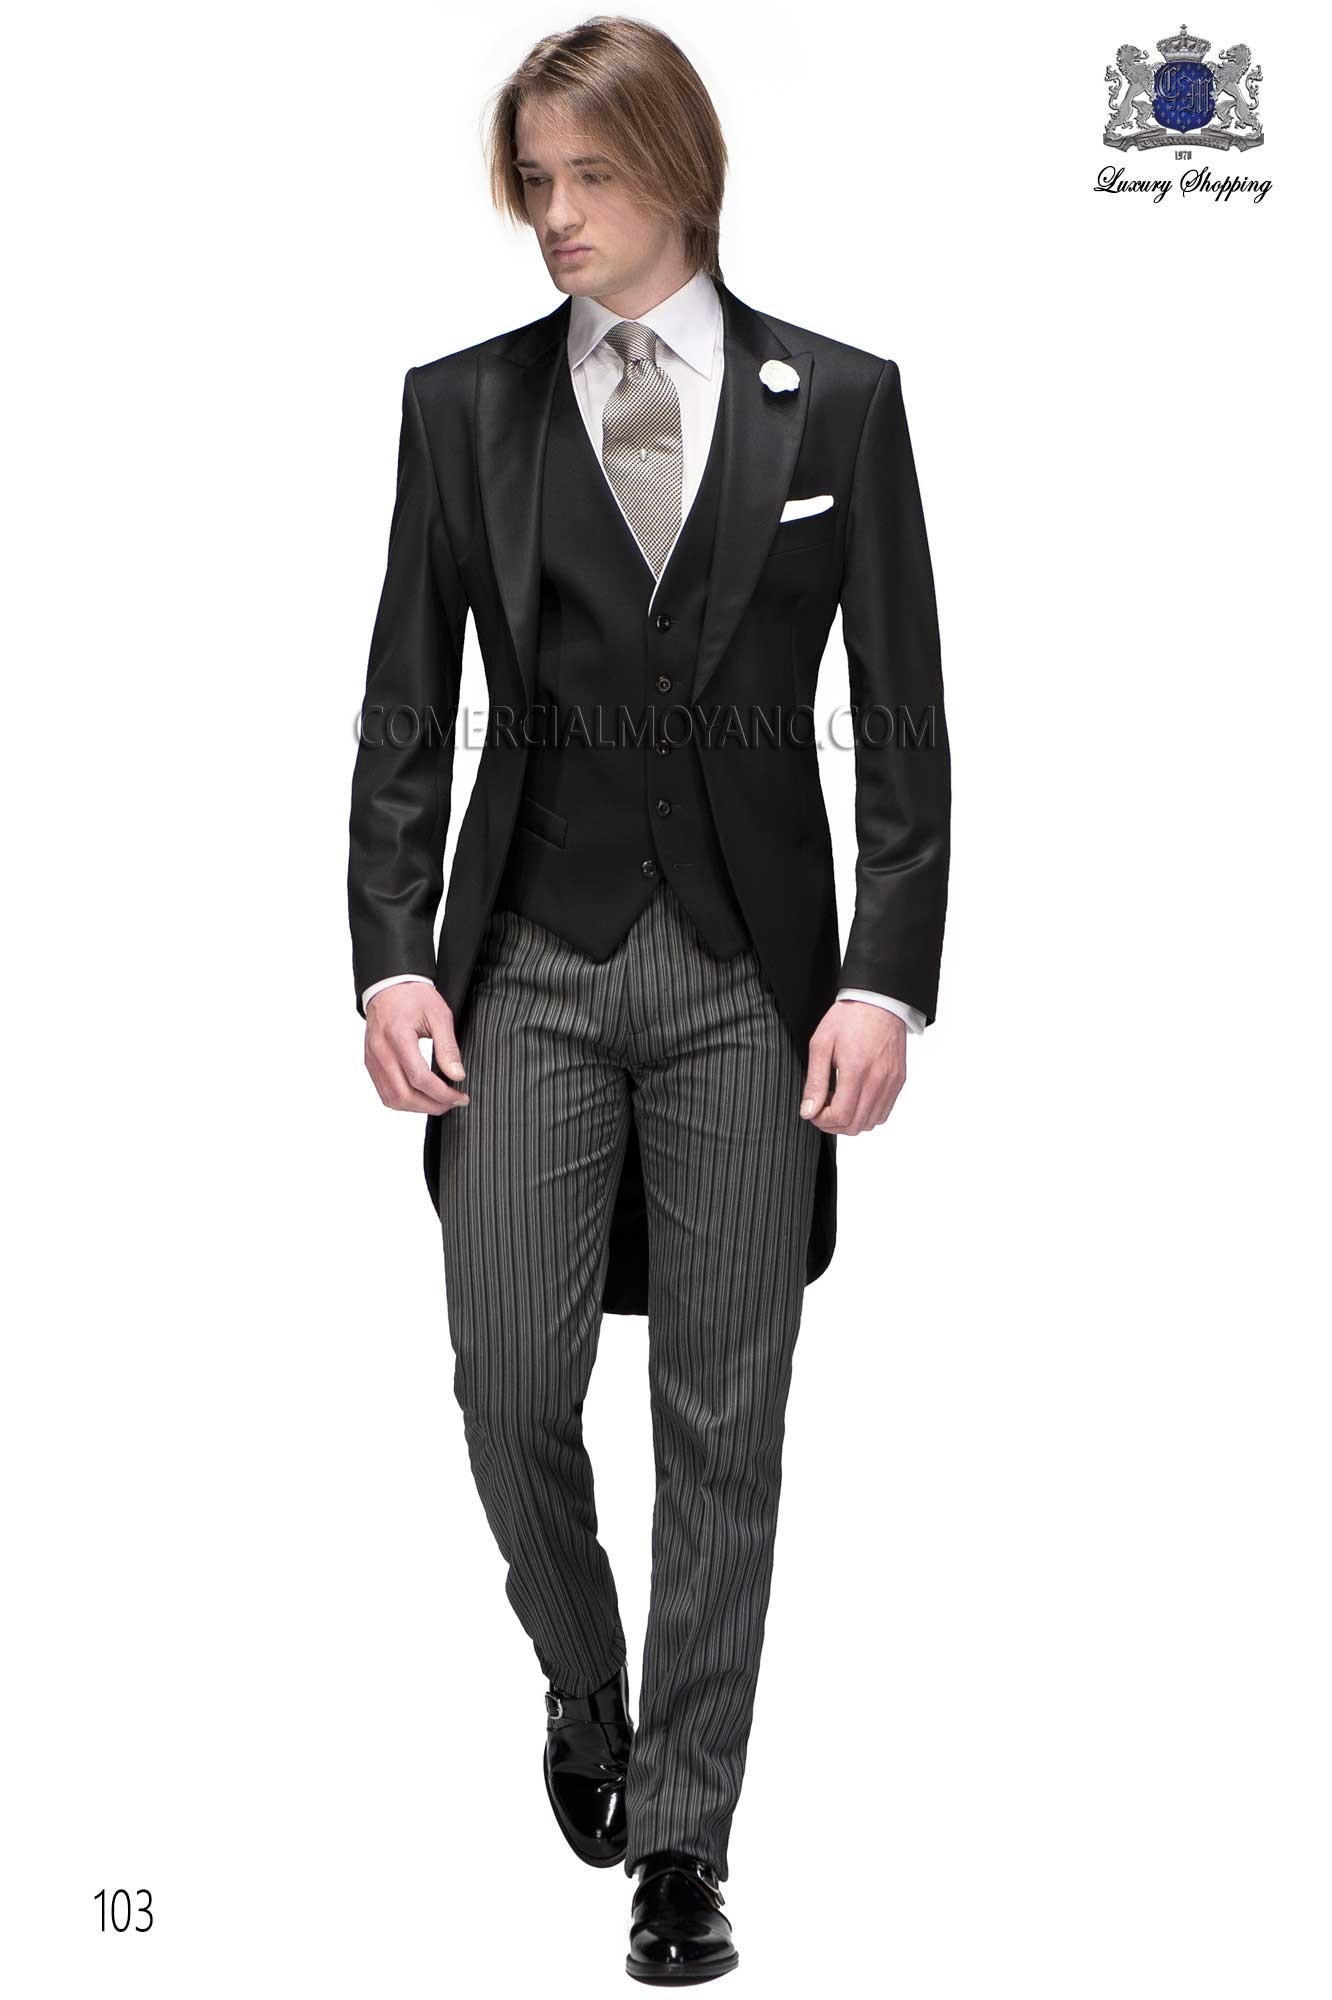 Gentleman black men wedding suit model 103 Ottavio Nuccio Gala